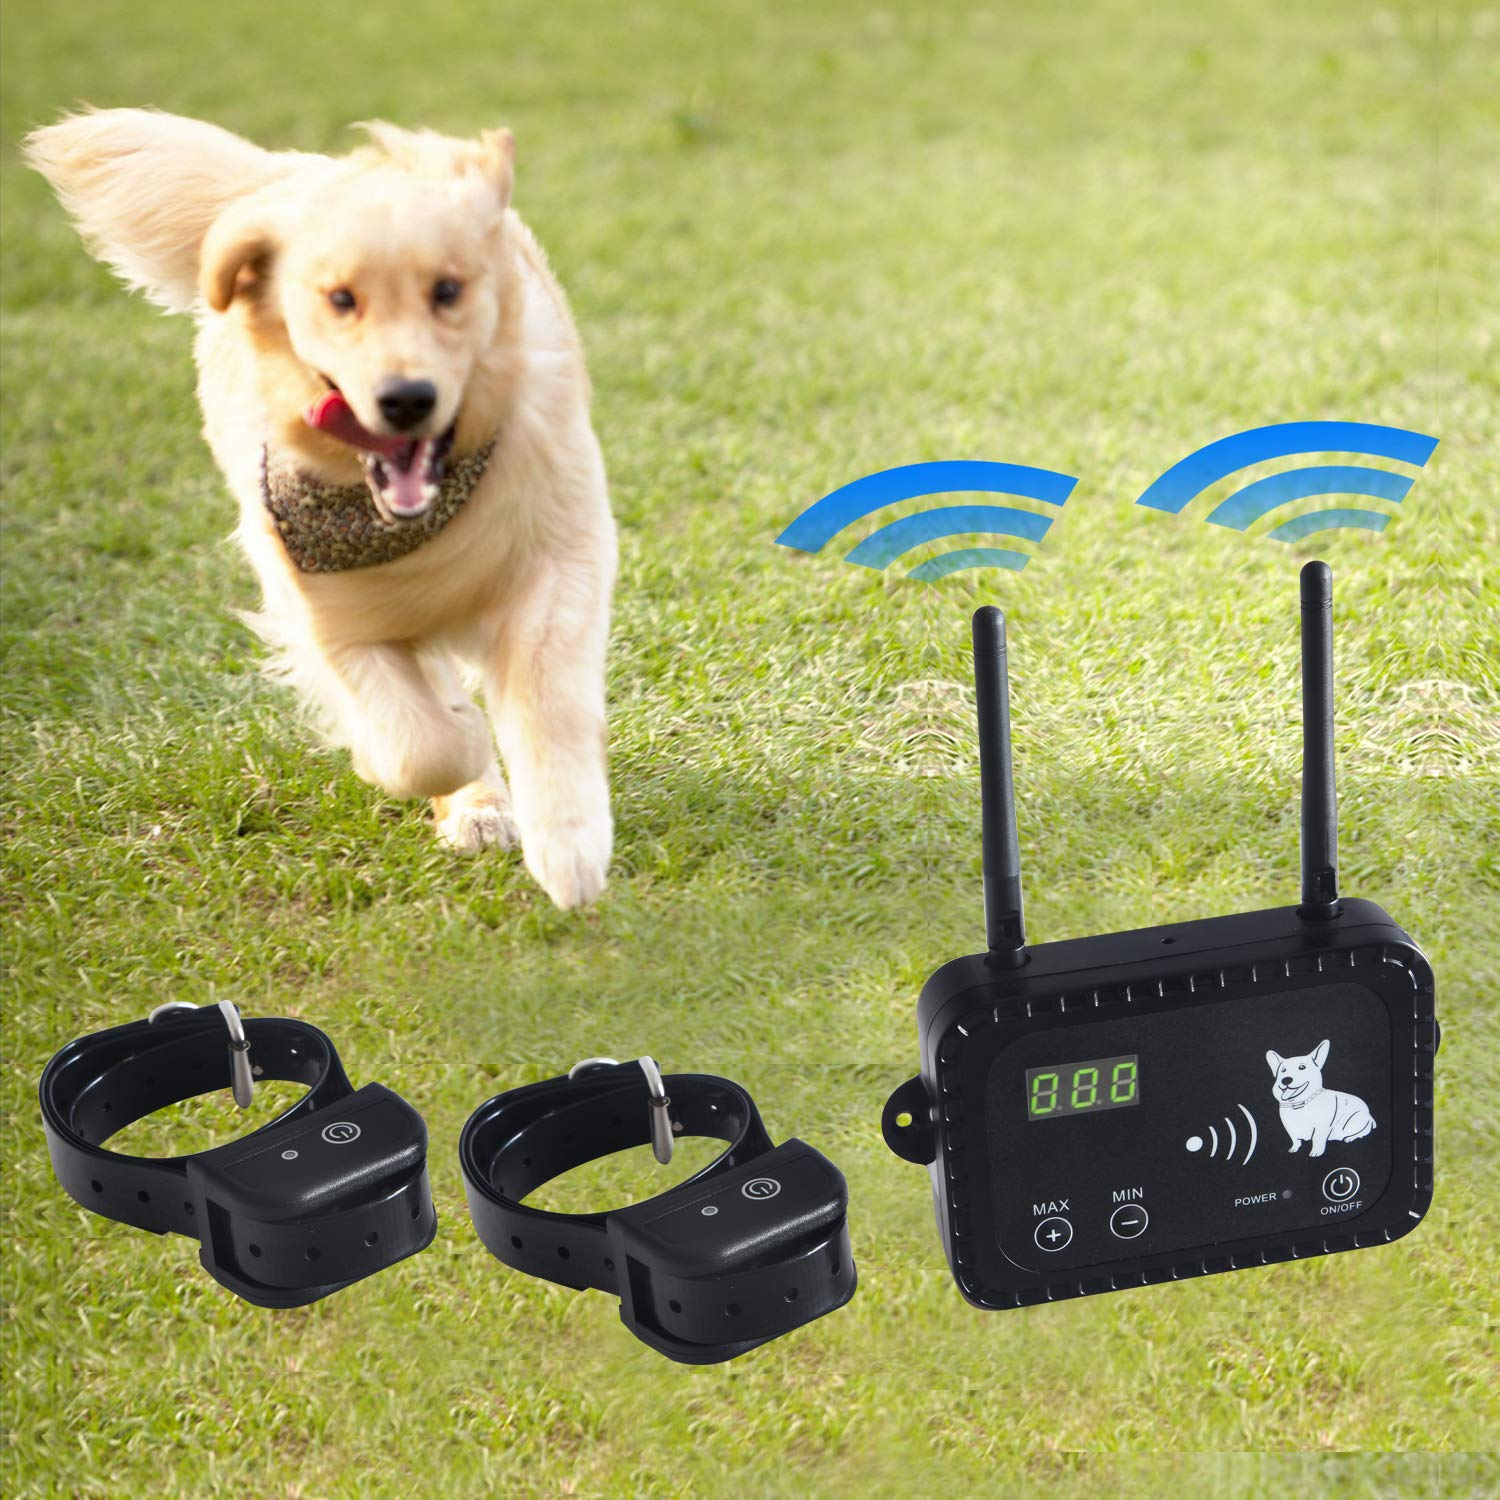 Wireless Dog Fence Electric Pet Containment System, Safe Effective Vibrate/Shock Dog Fence, Adjustable Range Up to 900 Feet & Display Distance, Rechargeable Waterproof Collar (2 Dog System, Black) by JIEYUAN